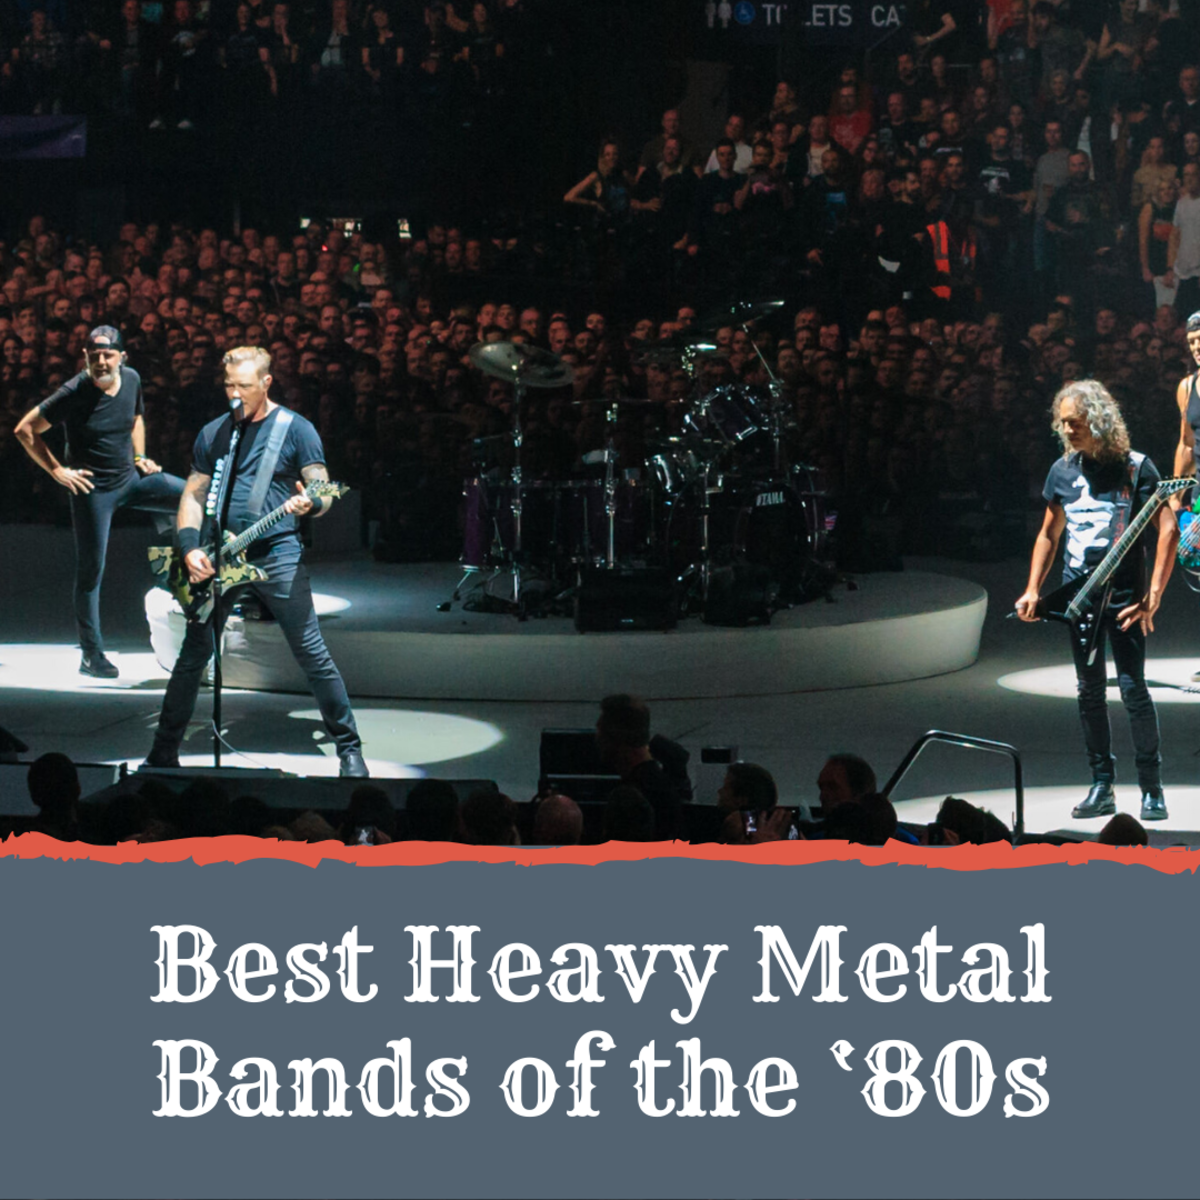 100 Best Heavy Metal Bands of the '80s